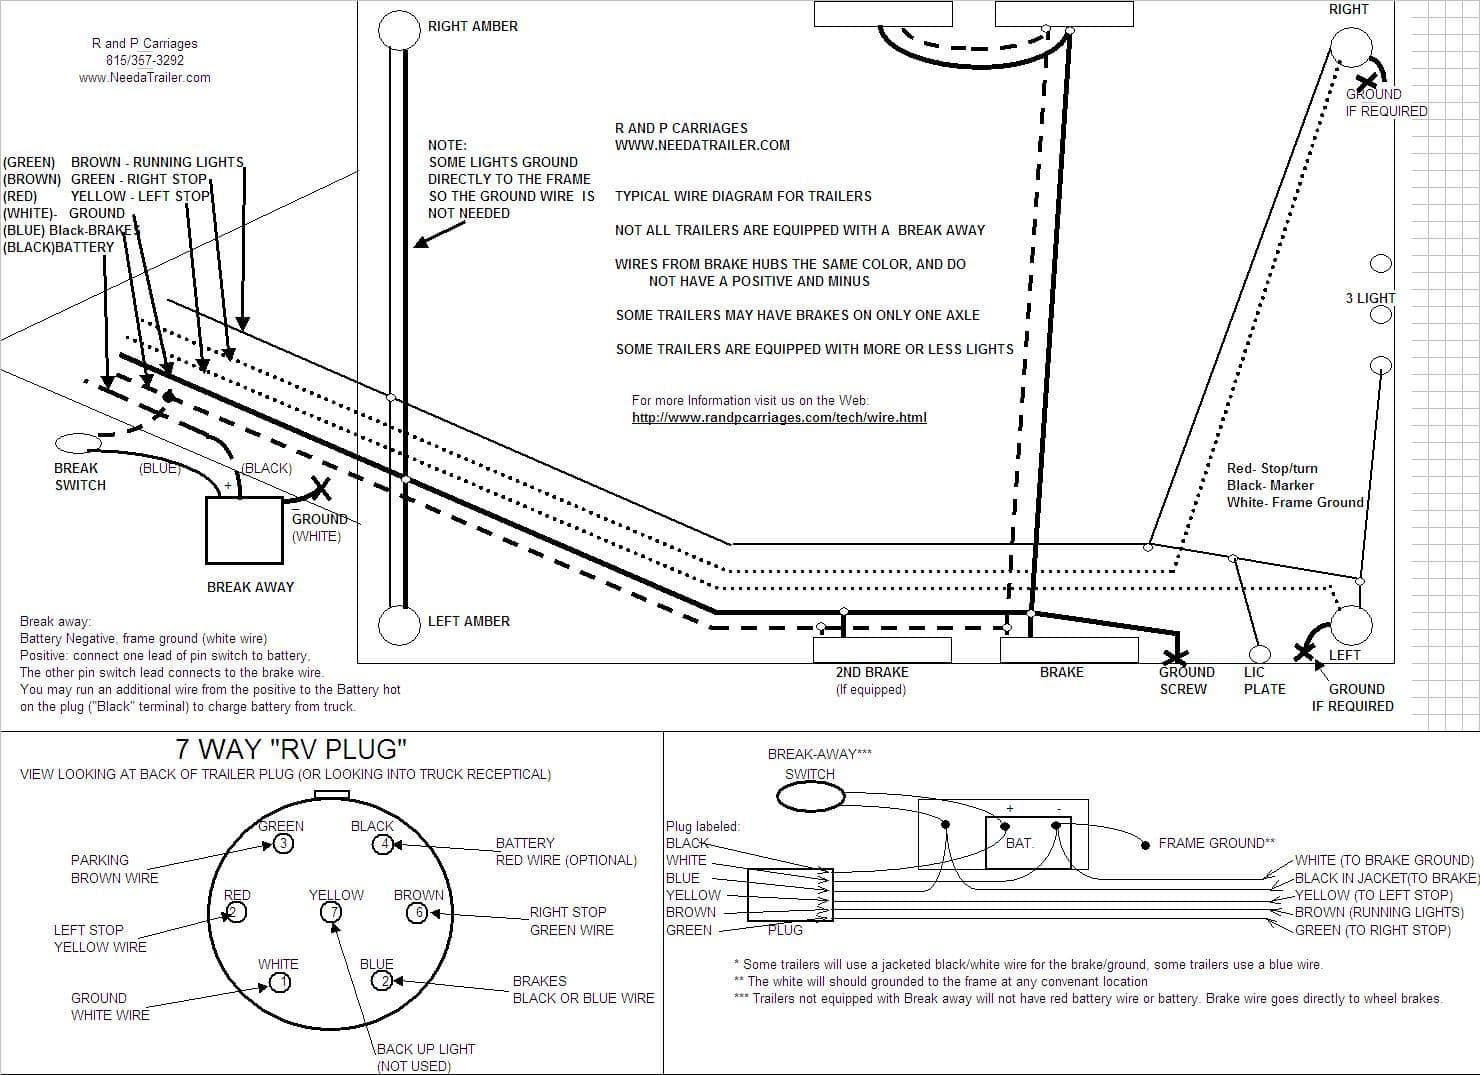 7 Way Plug Information | R And P Carriages | Cargo, Utility, Dump - Truck To Trailer Wiring Diagram